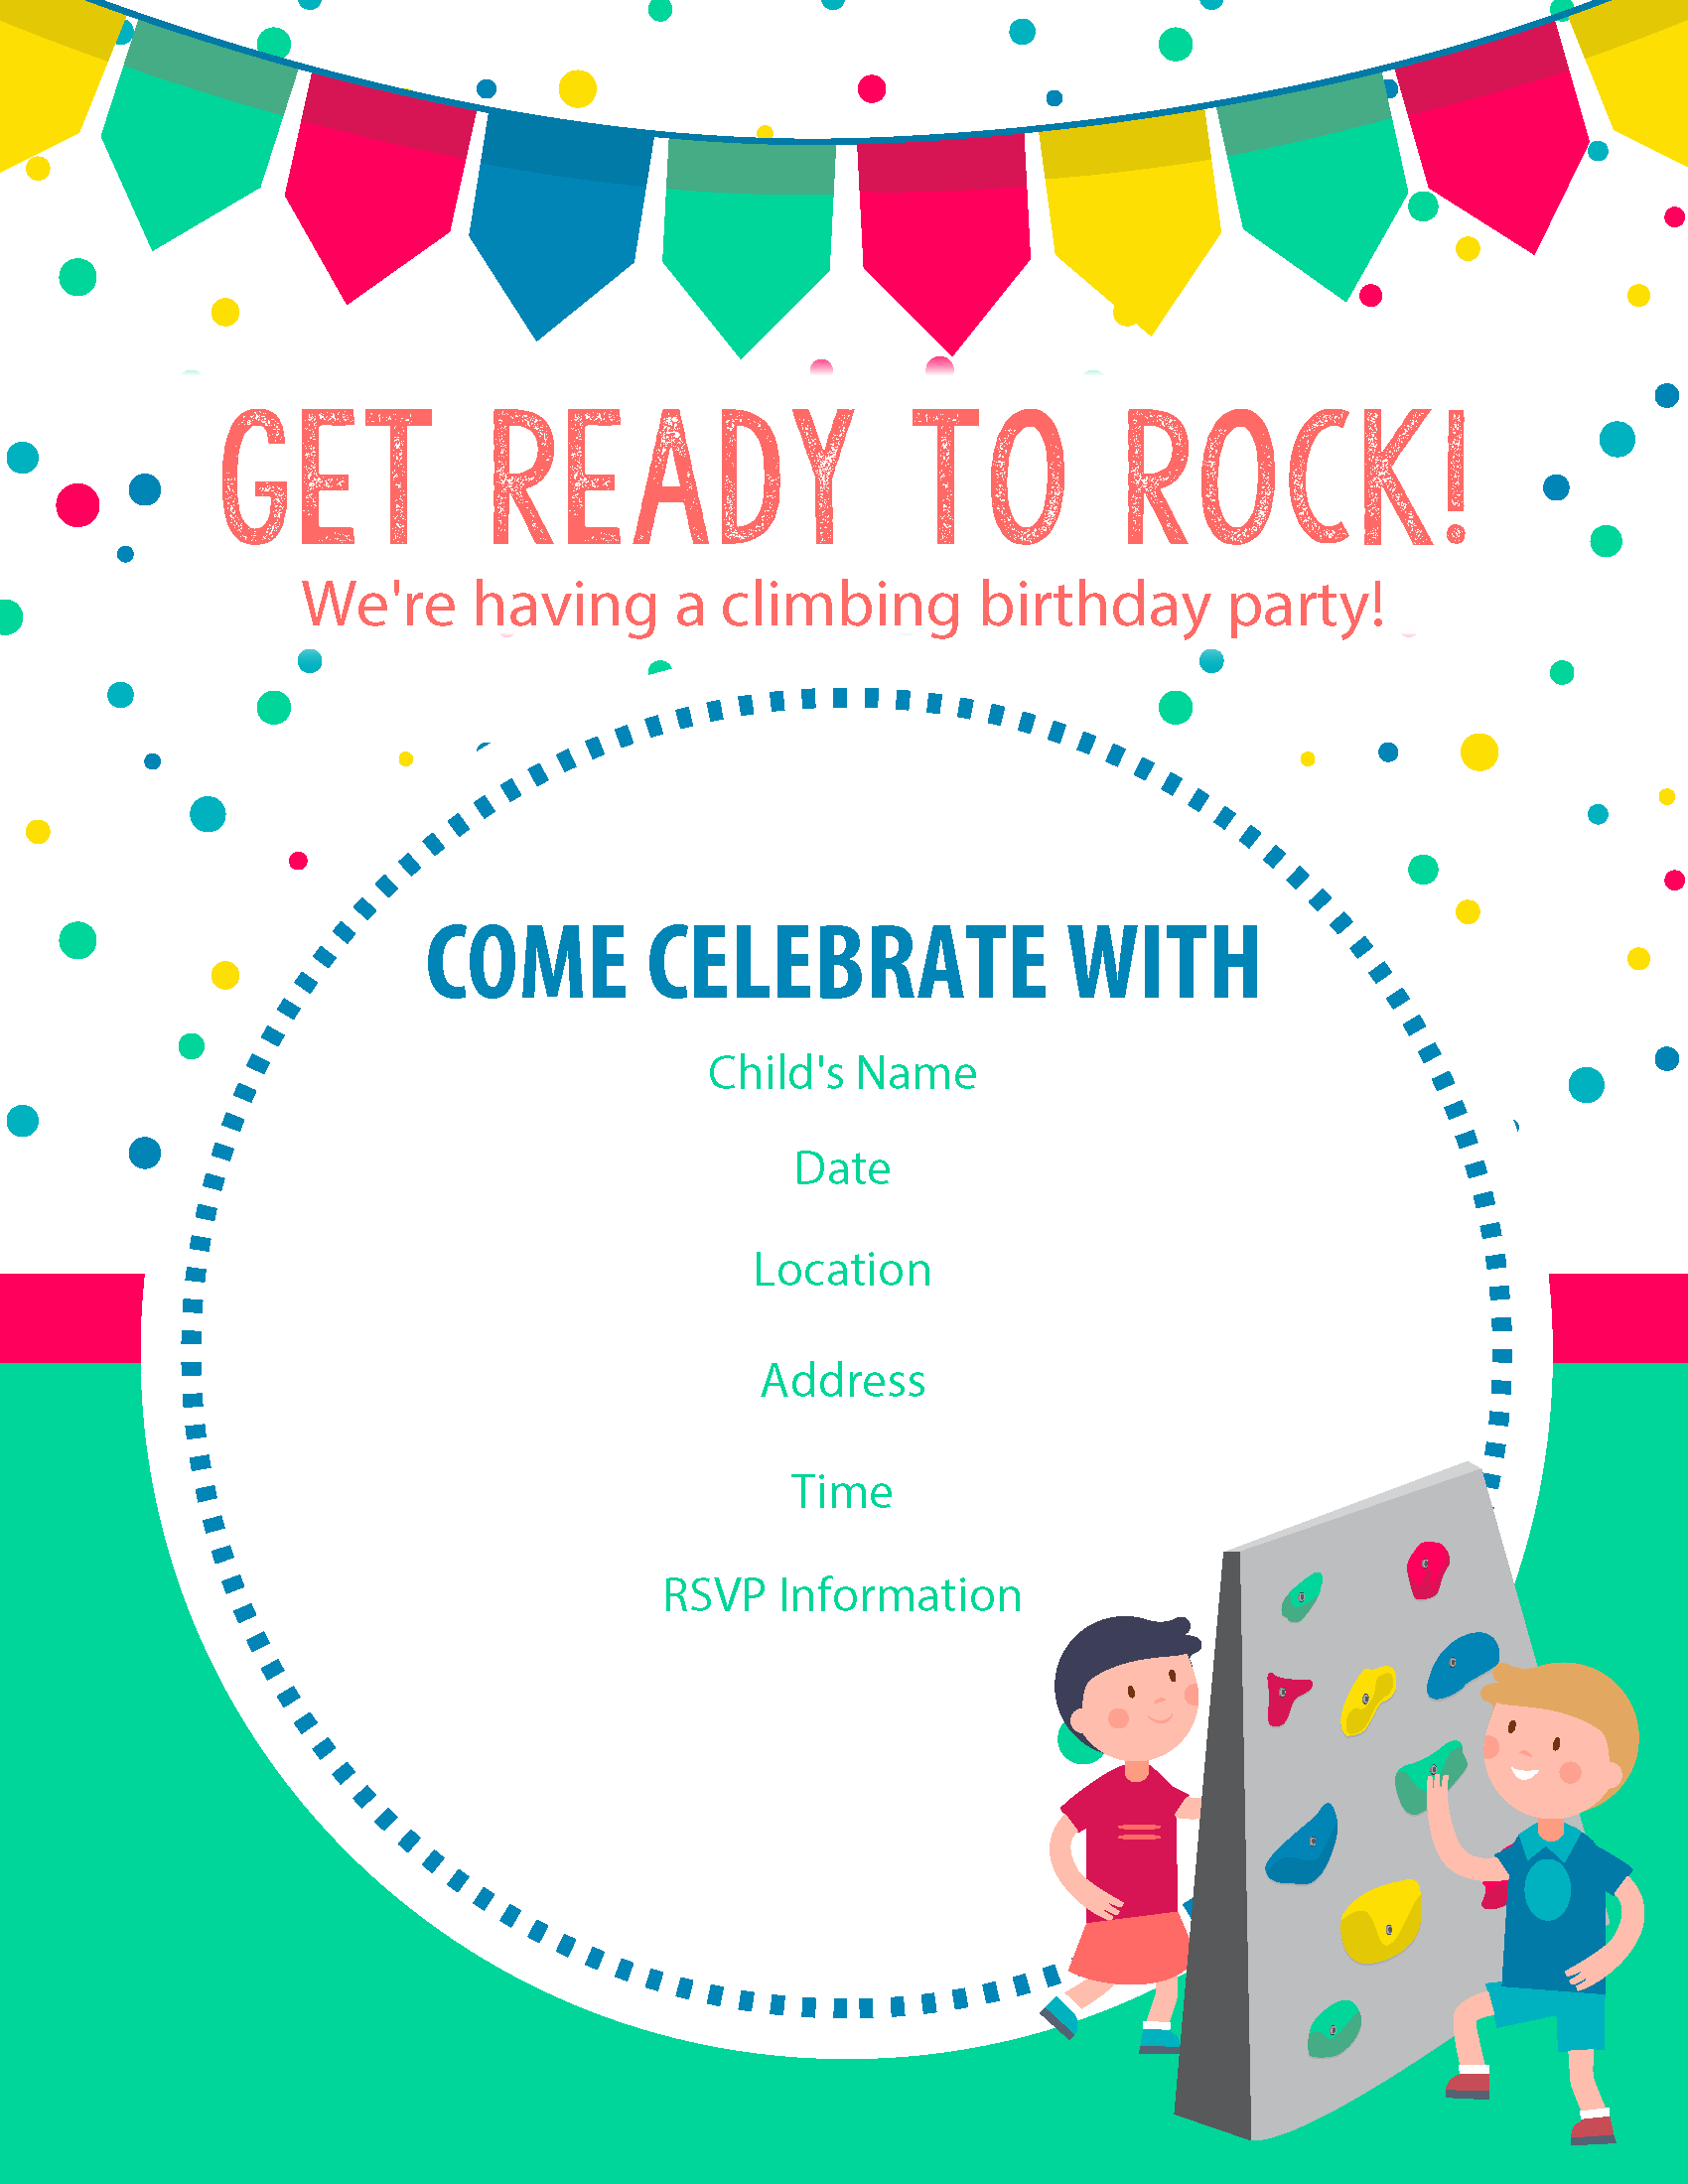 Happy birthday free rock climbing birthday party invitations one of our free rock climbing birthday party invitations stopboris Choice Image